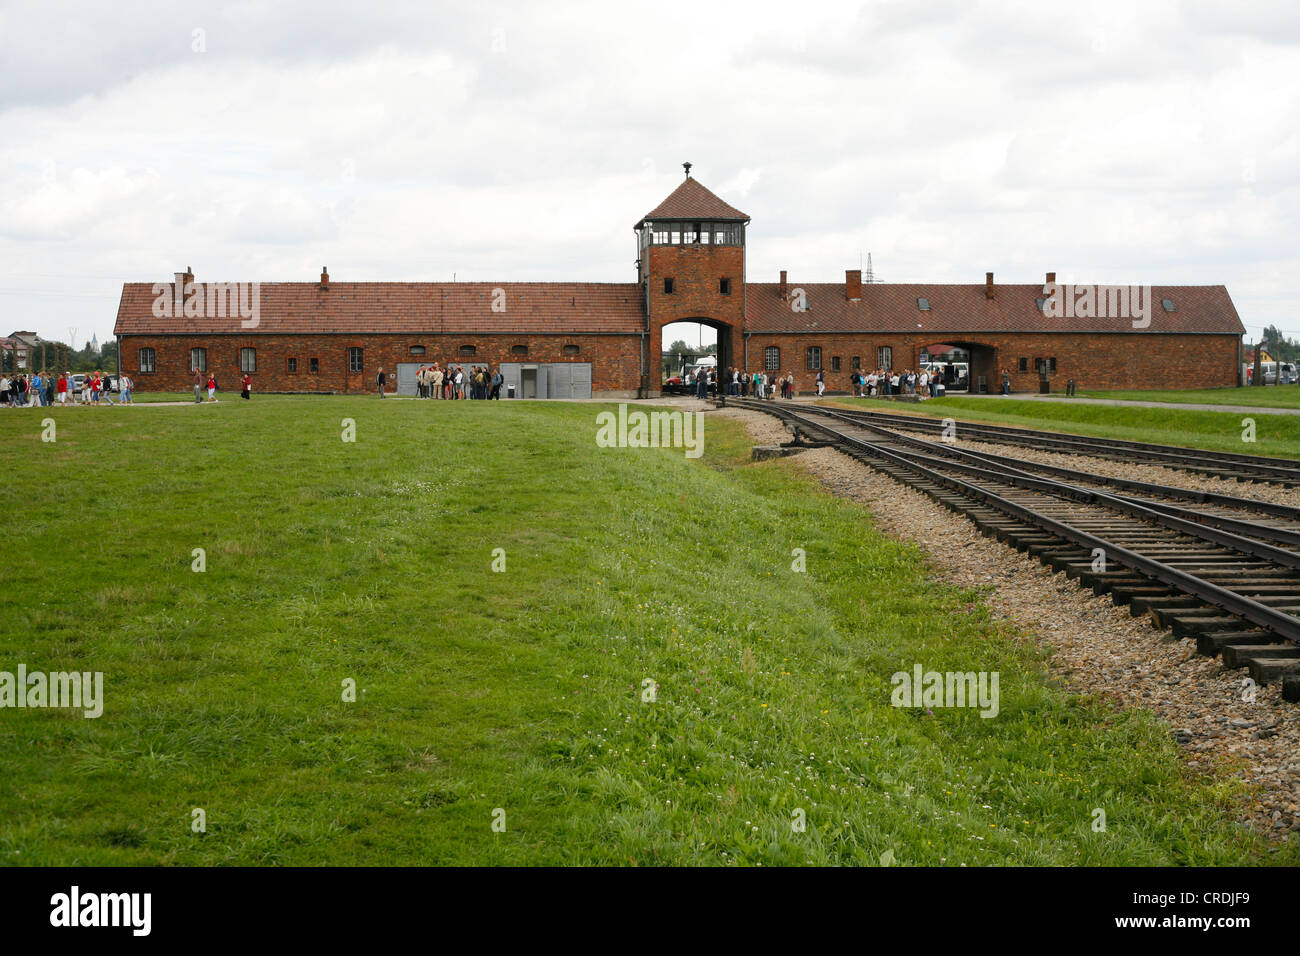 Entrance gate and rail tracks to the concentration camp, Auschwitz-Birkenau, Poland, Europe - Stock Image